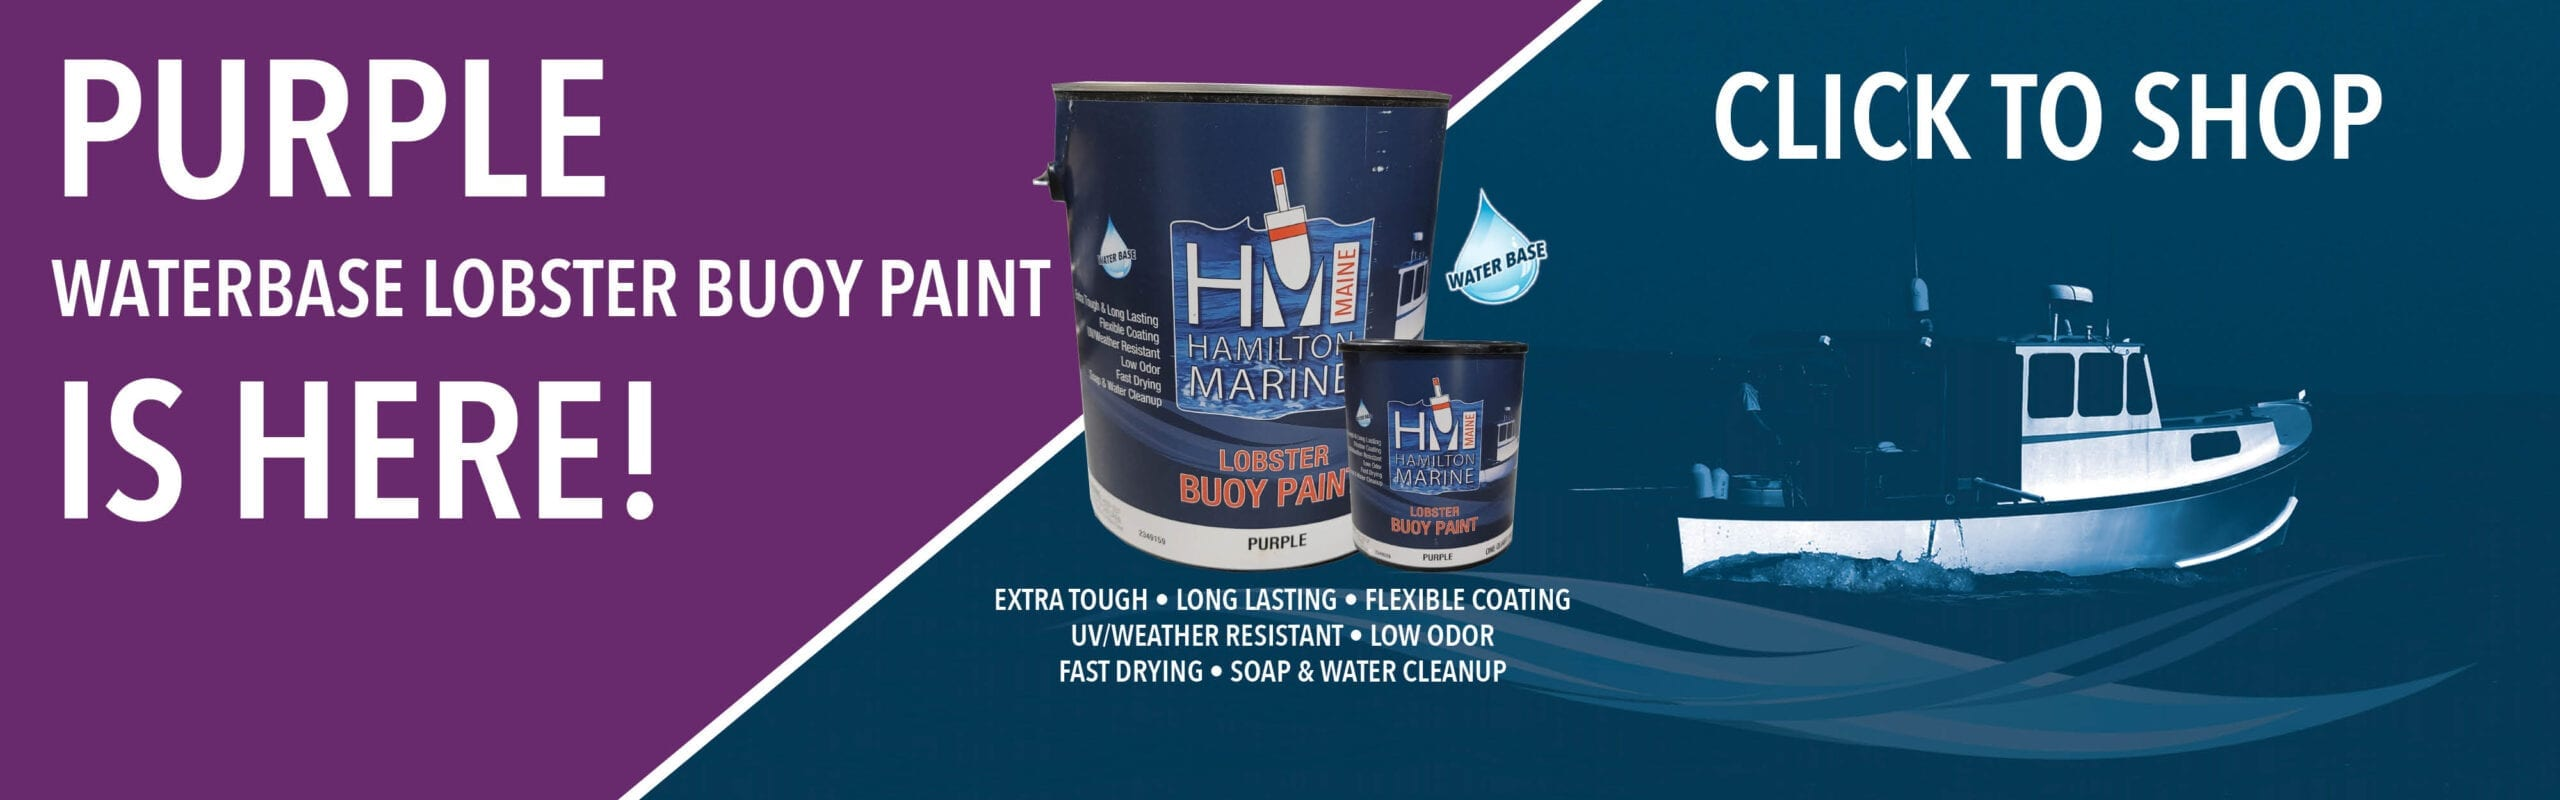 HM Purple Lobster Buoy Paint is Here!